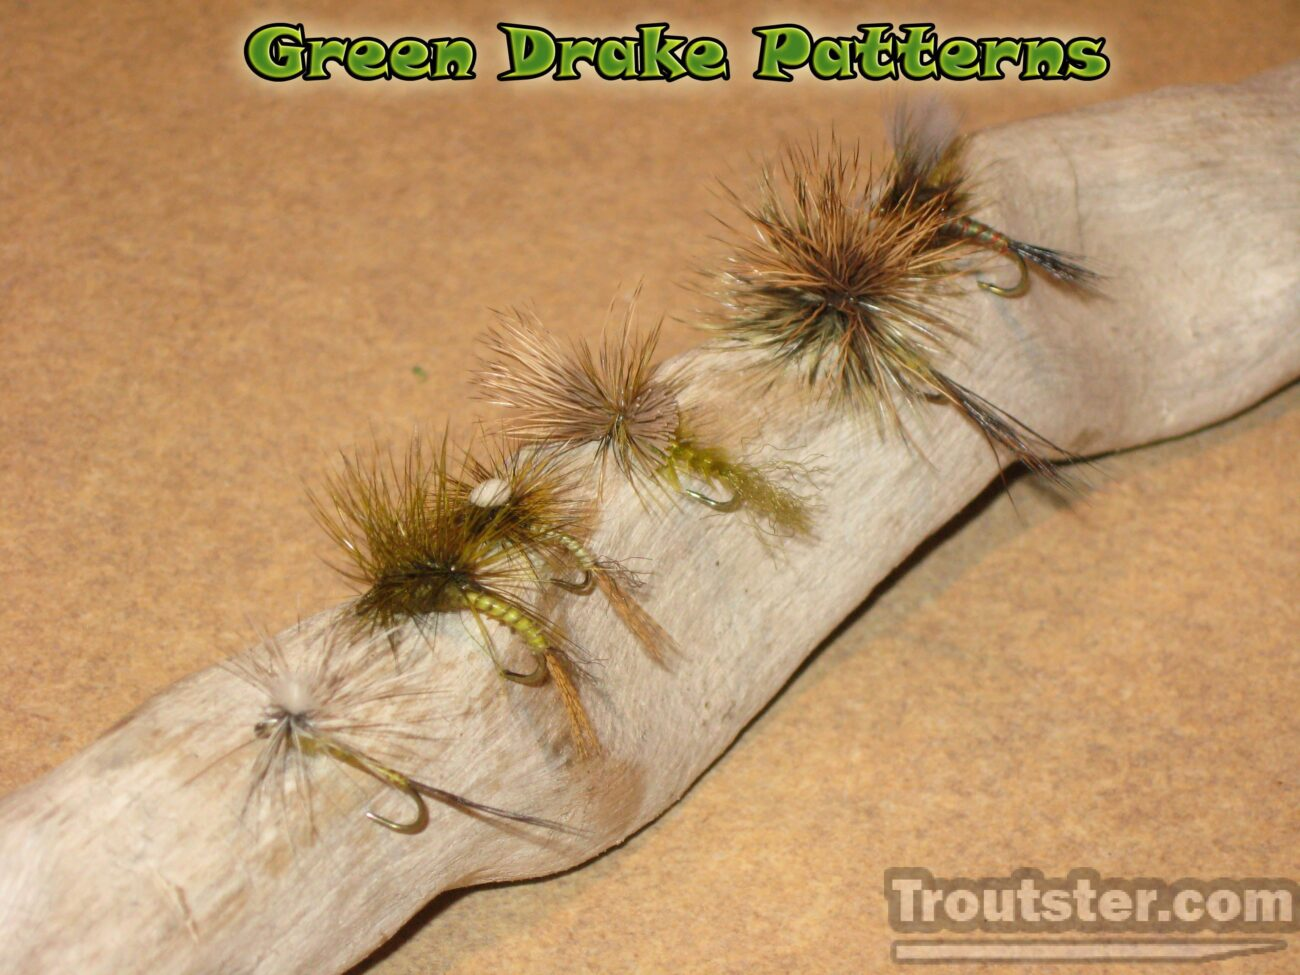 Emerger, spinner, parachute and dun green drake flies